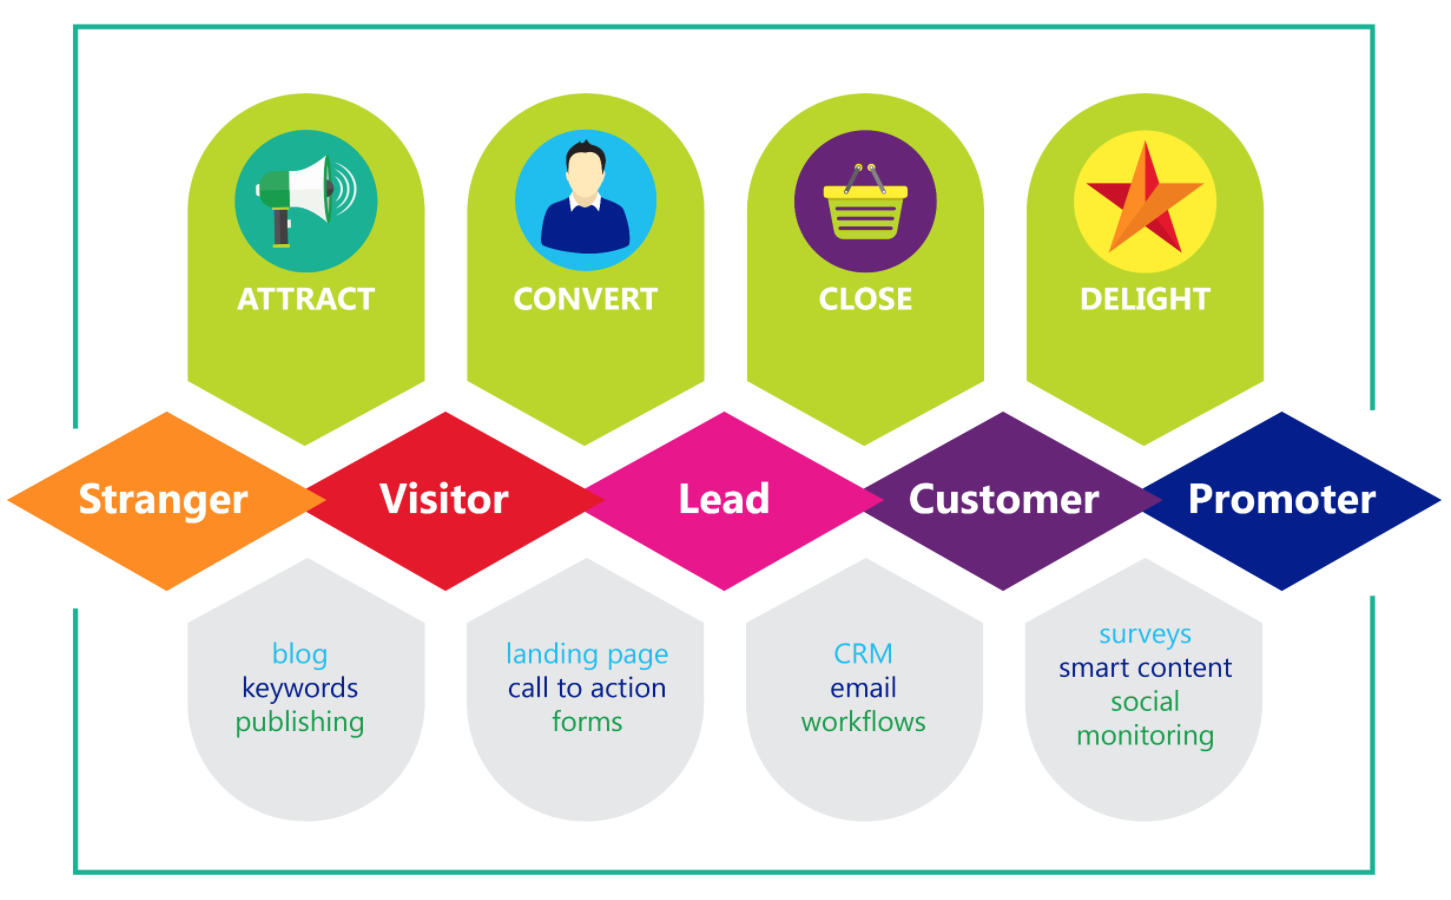 The four stages of inbound marketing; attract, convert, close, delight